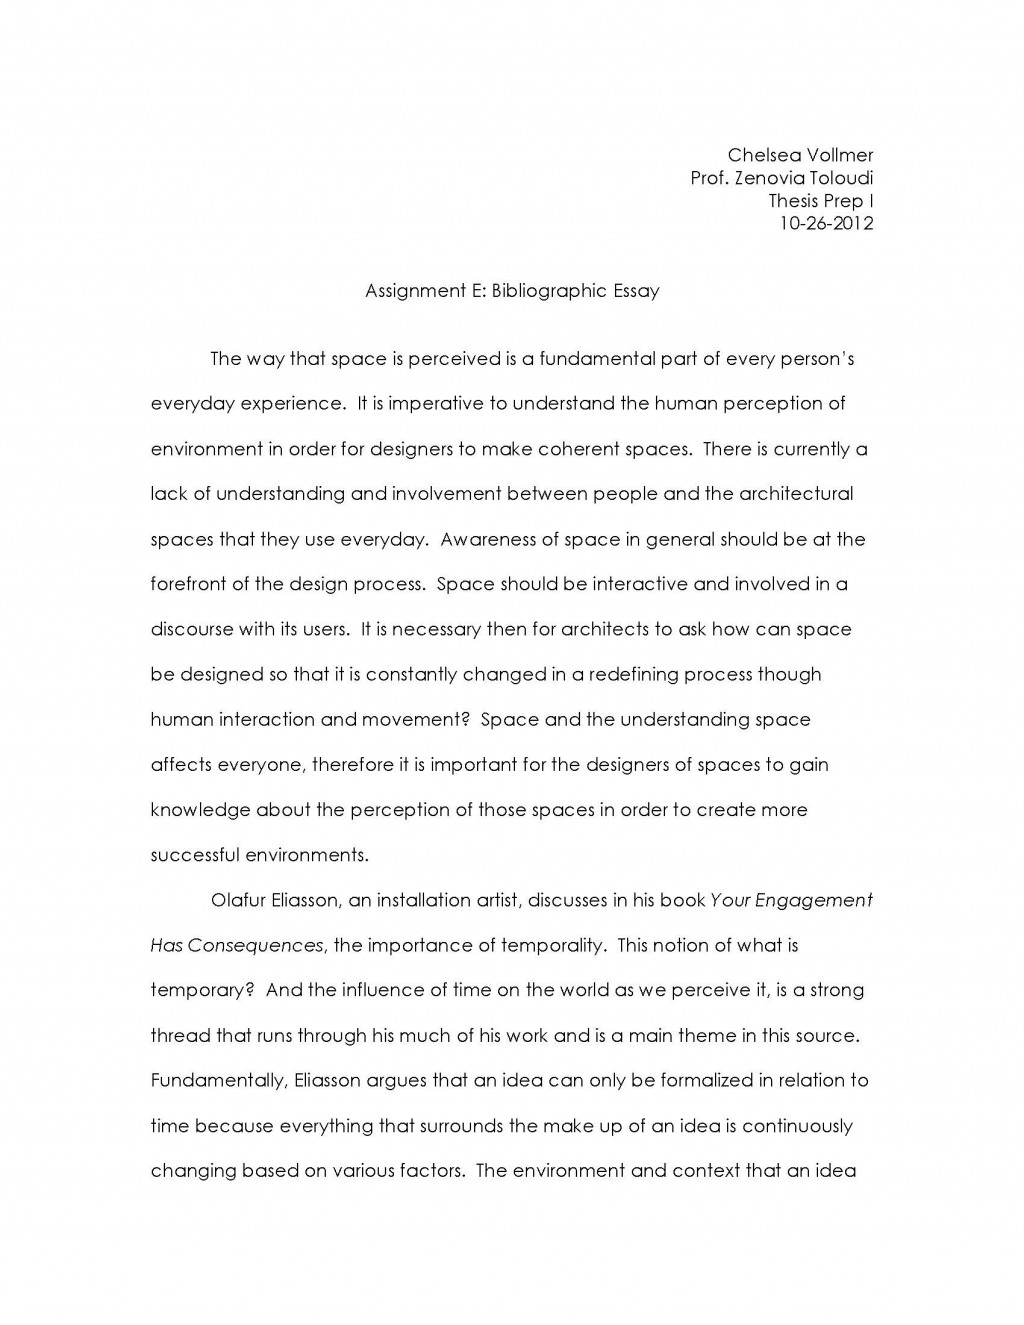 013 Essay Example Assignment E Page 12 Satire Fearsome Essays Satirical Topics For High School Examples On Gun Control Large